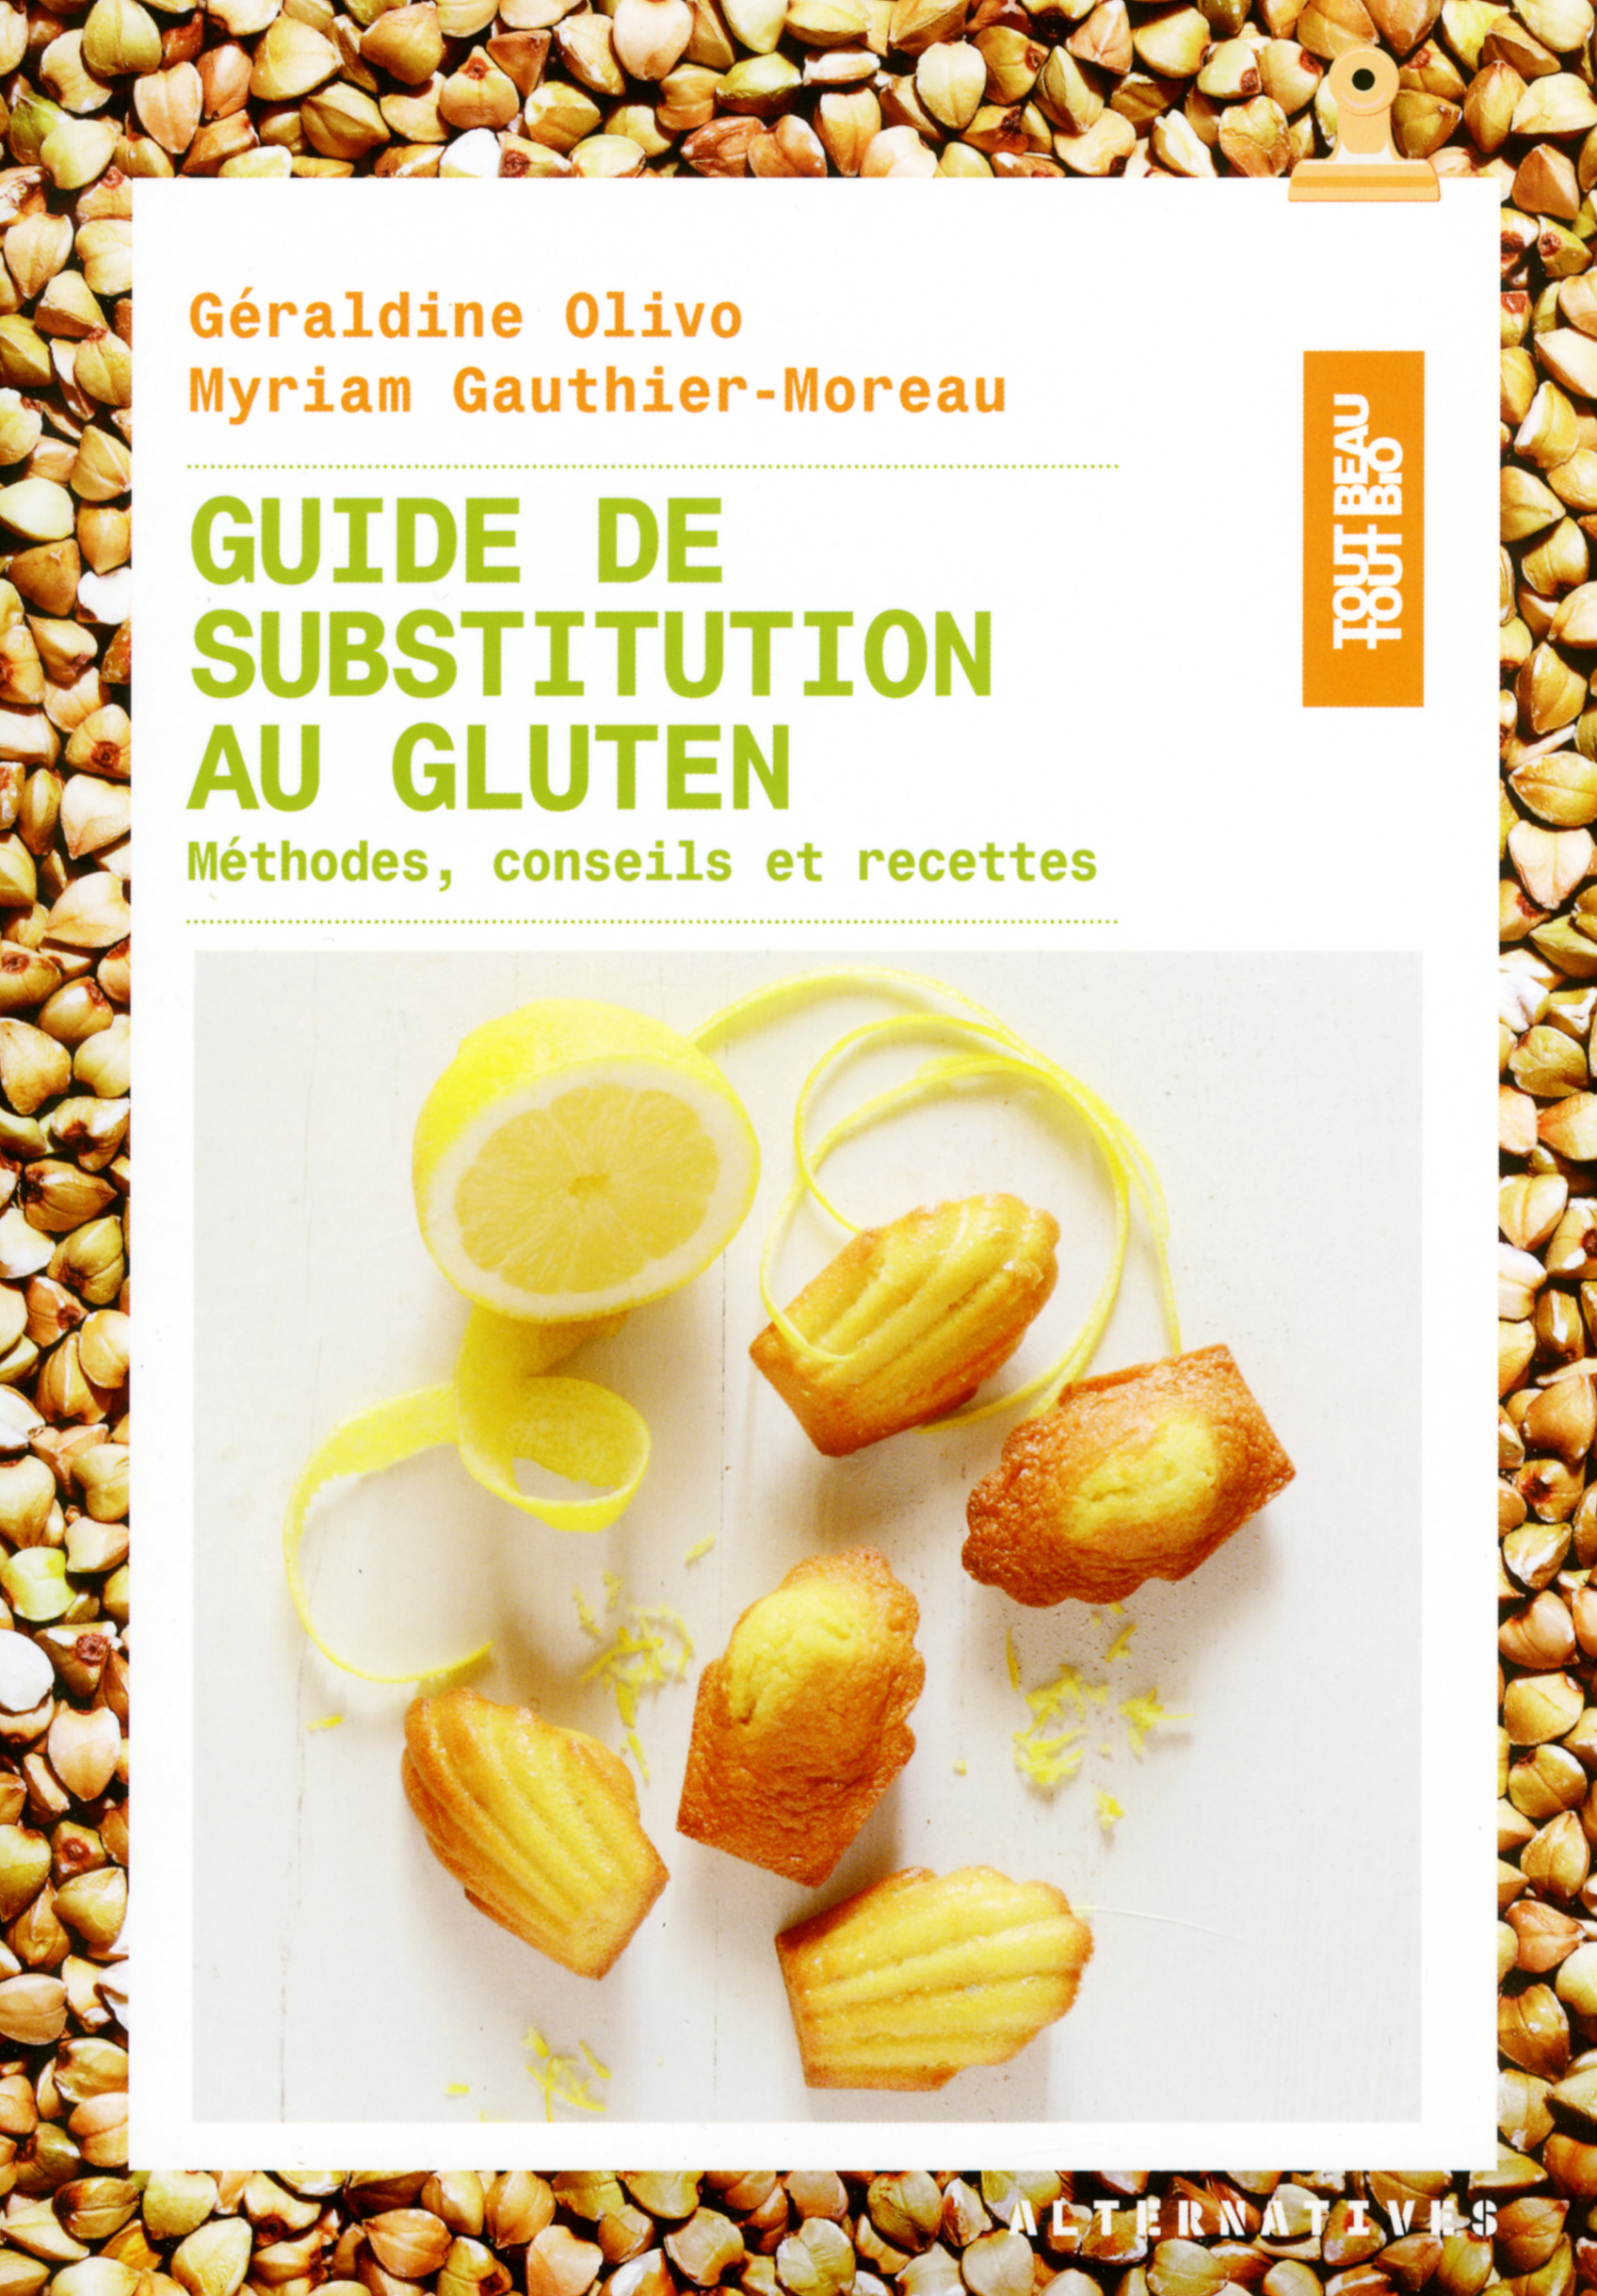 Guide substitution au gluten :: Alternatives